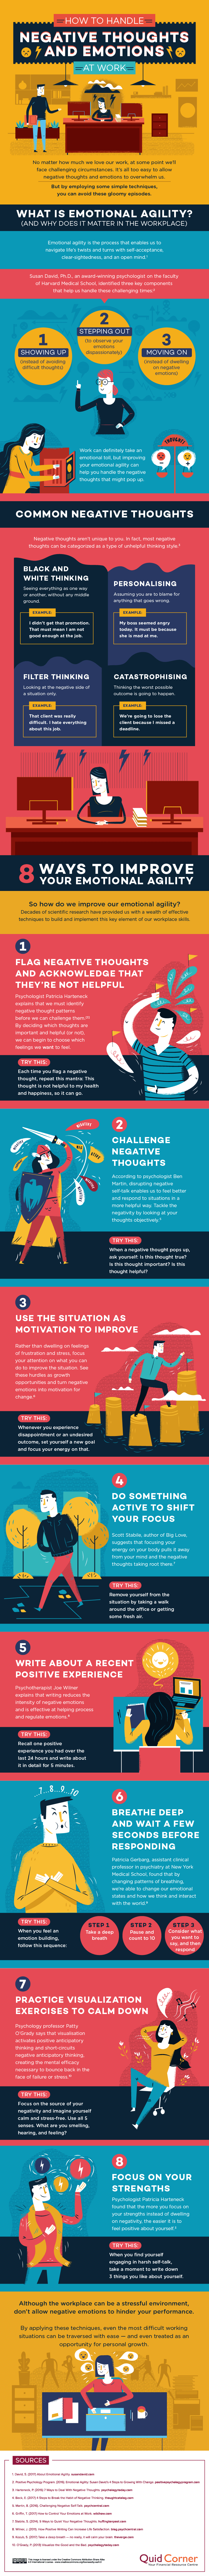 how-to-handle-negative-thoughts-emotional-agility